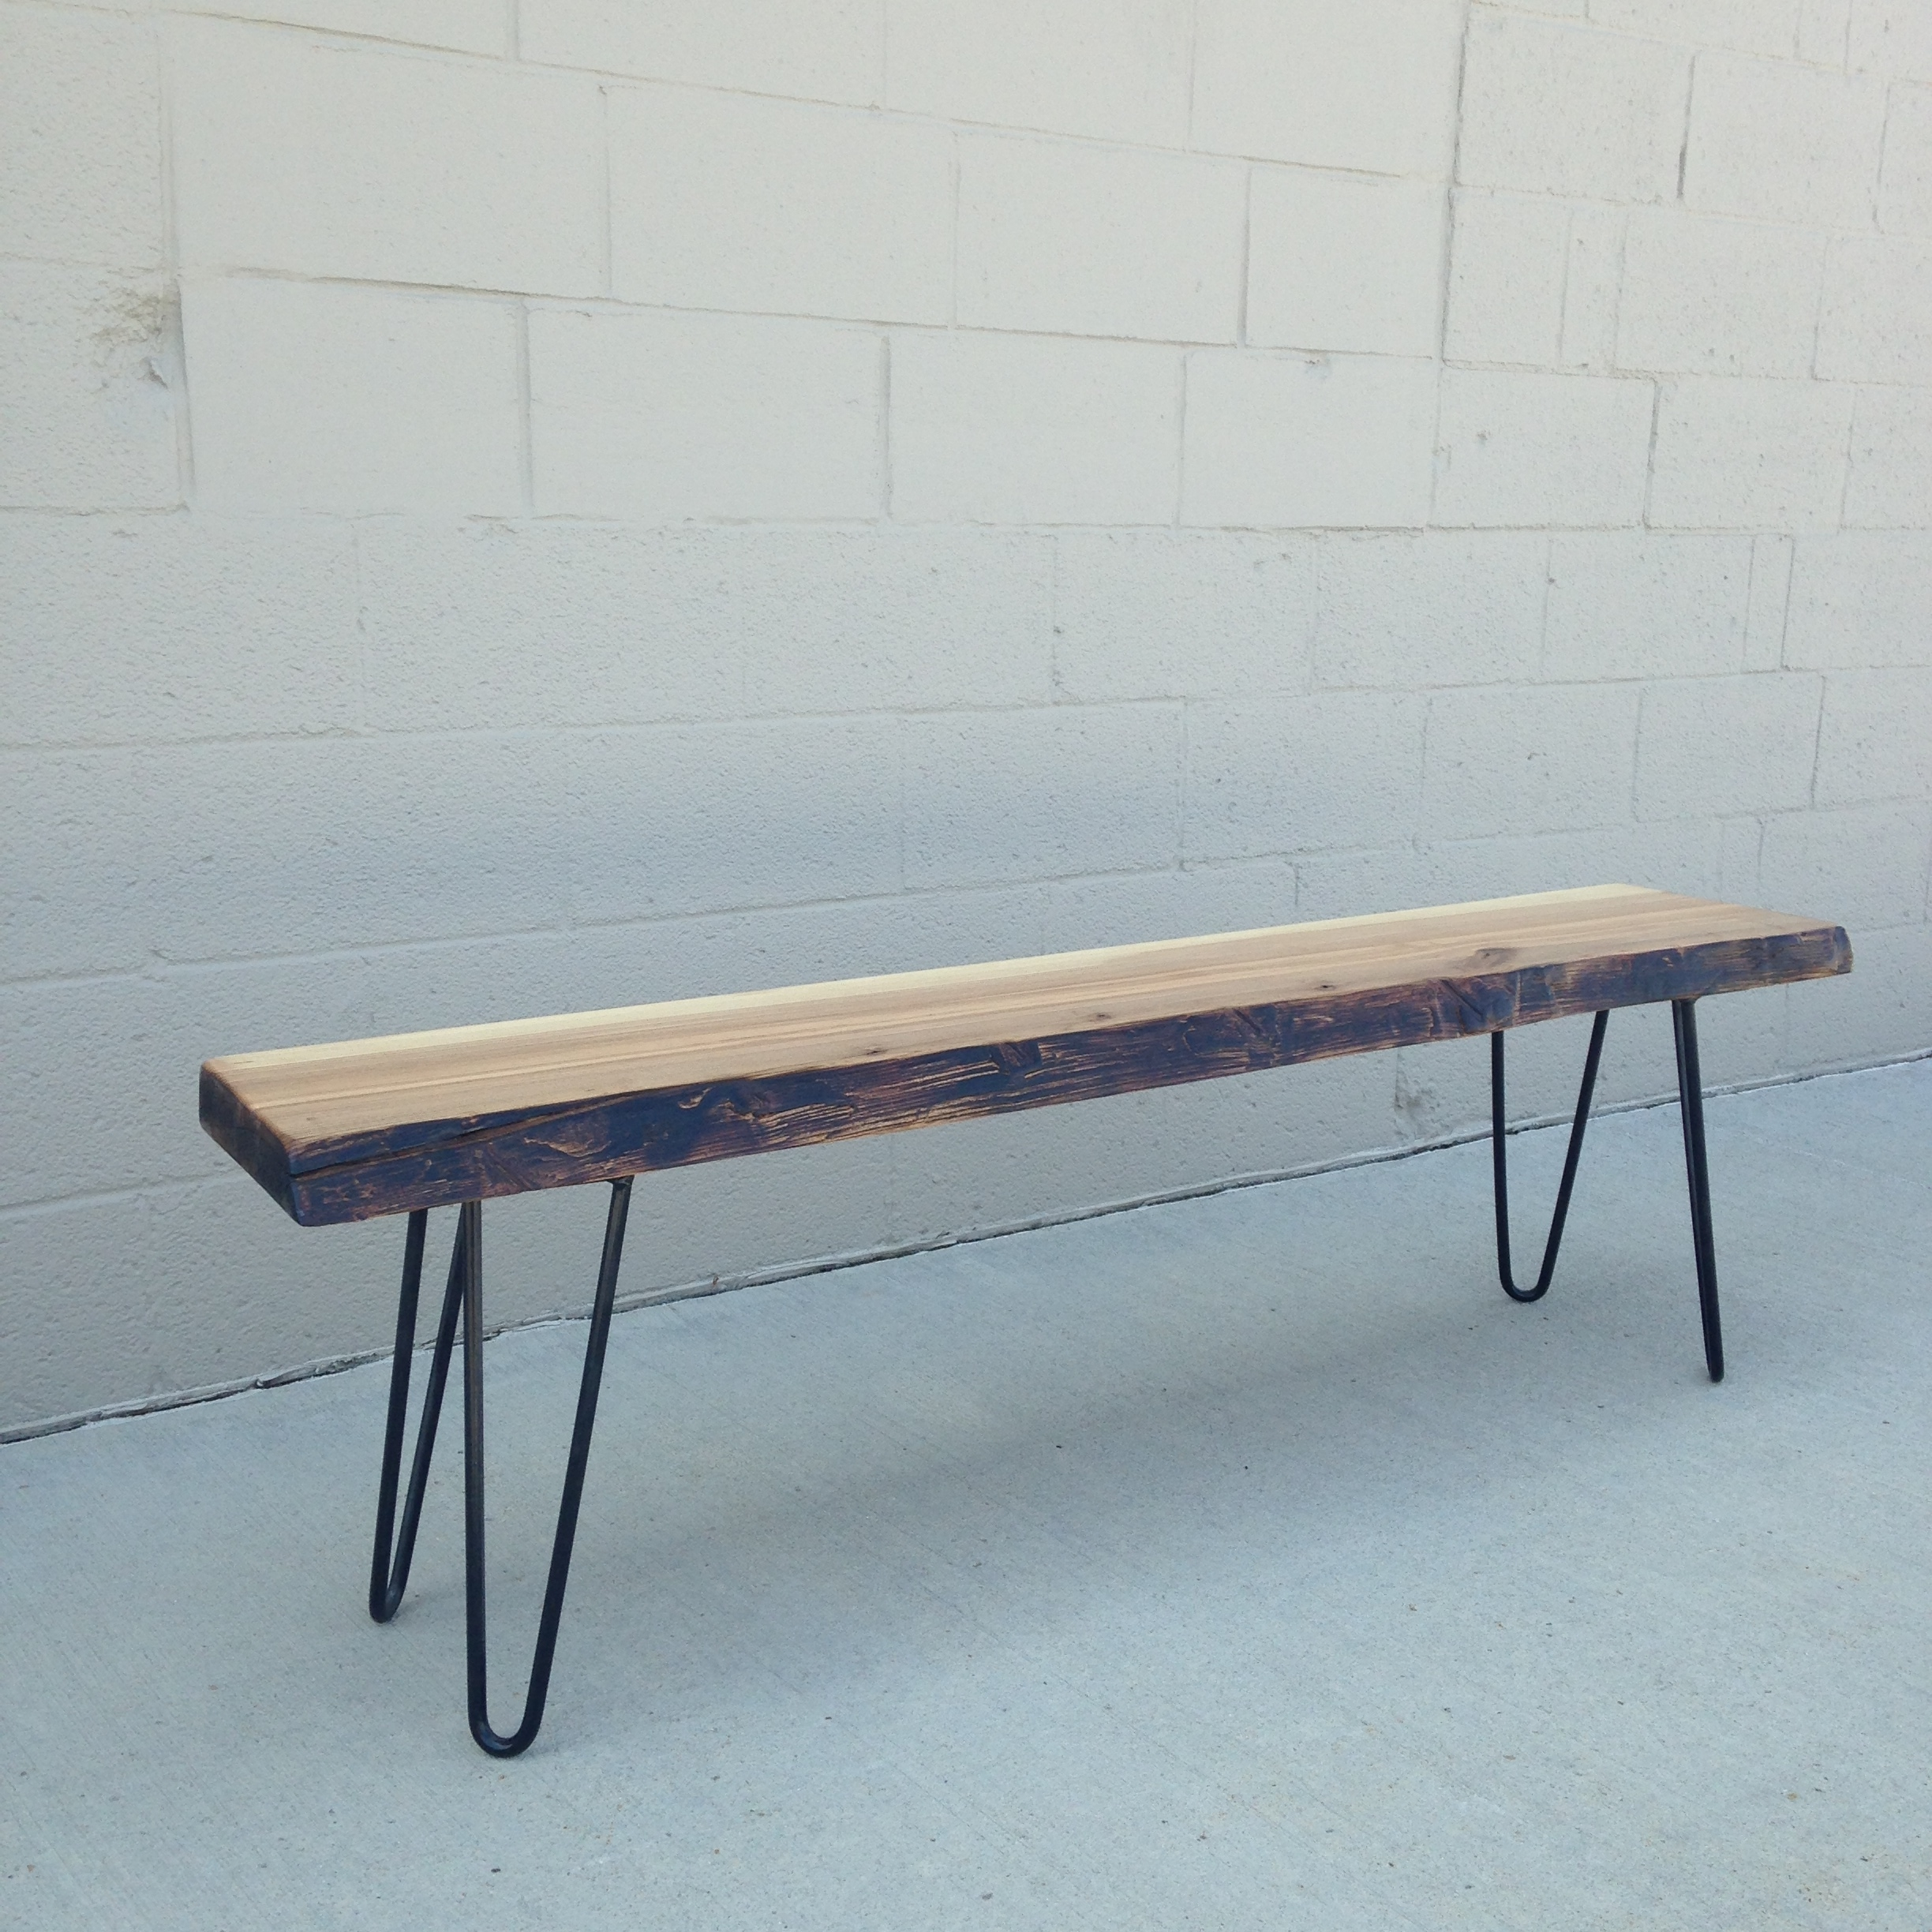 Live edge Ash bench with black hairpin legs